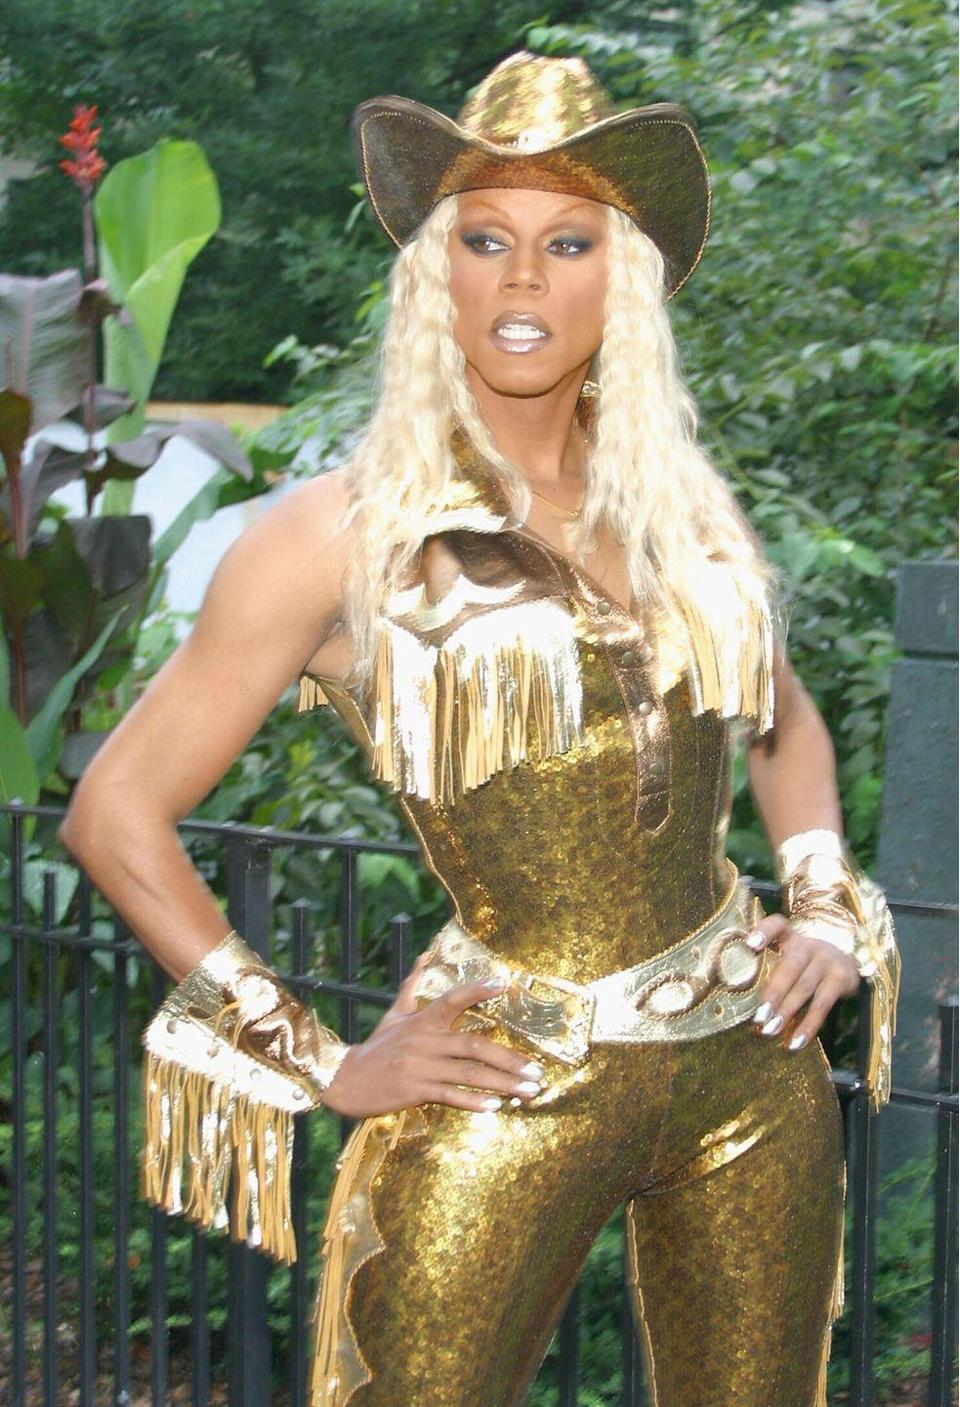 <p>More gold in this glam cowboy look for Wigstock. That tiny waist is to die for.</p>